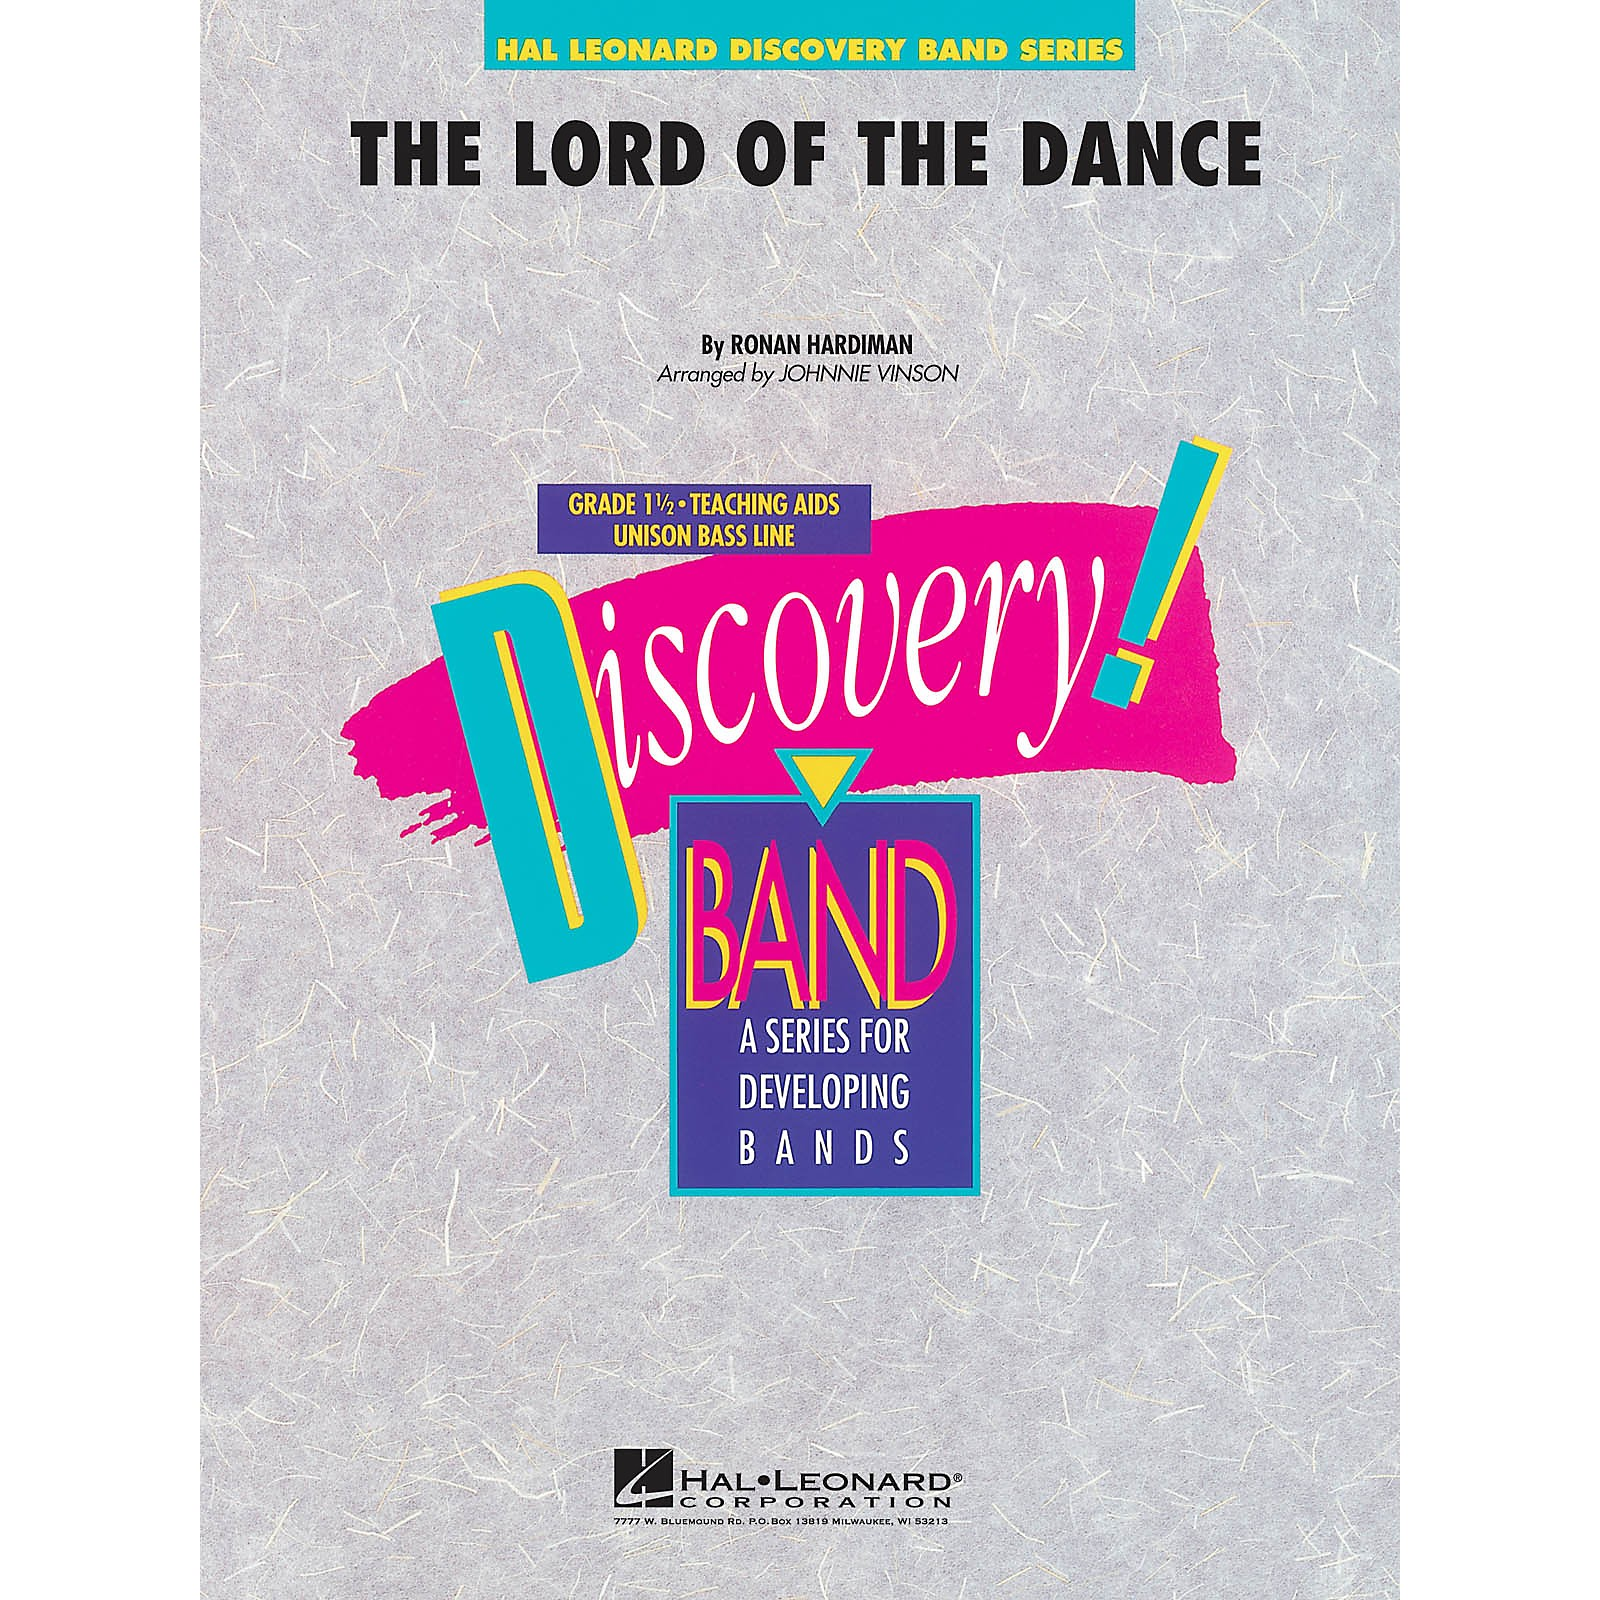 Hal Leonard The Lord of the Dance Concert Band Level 1.5 Arranged by Johnnie Vinson